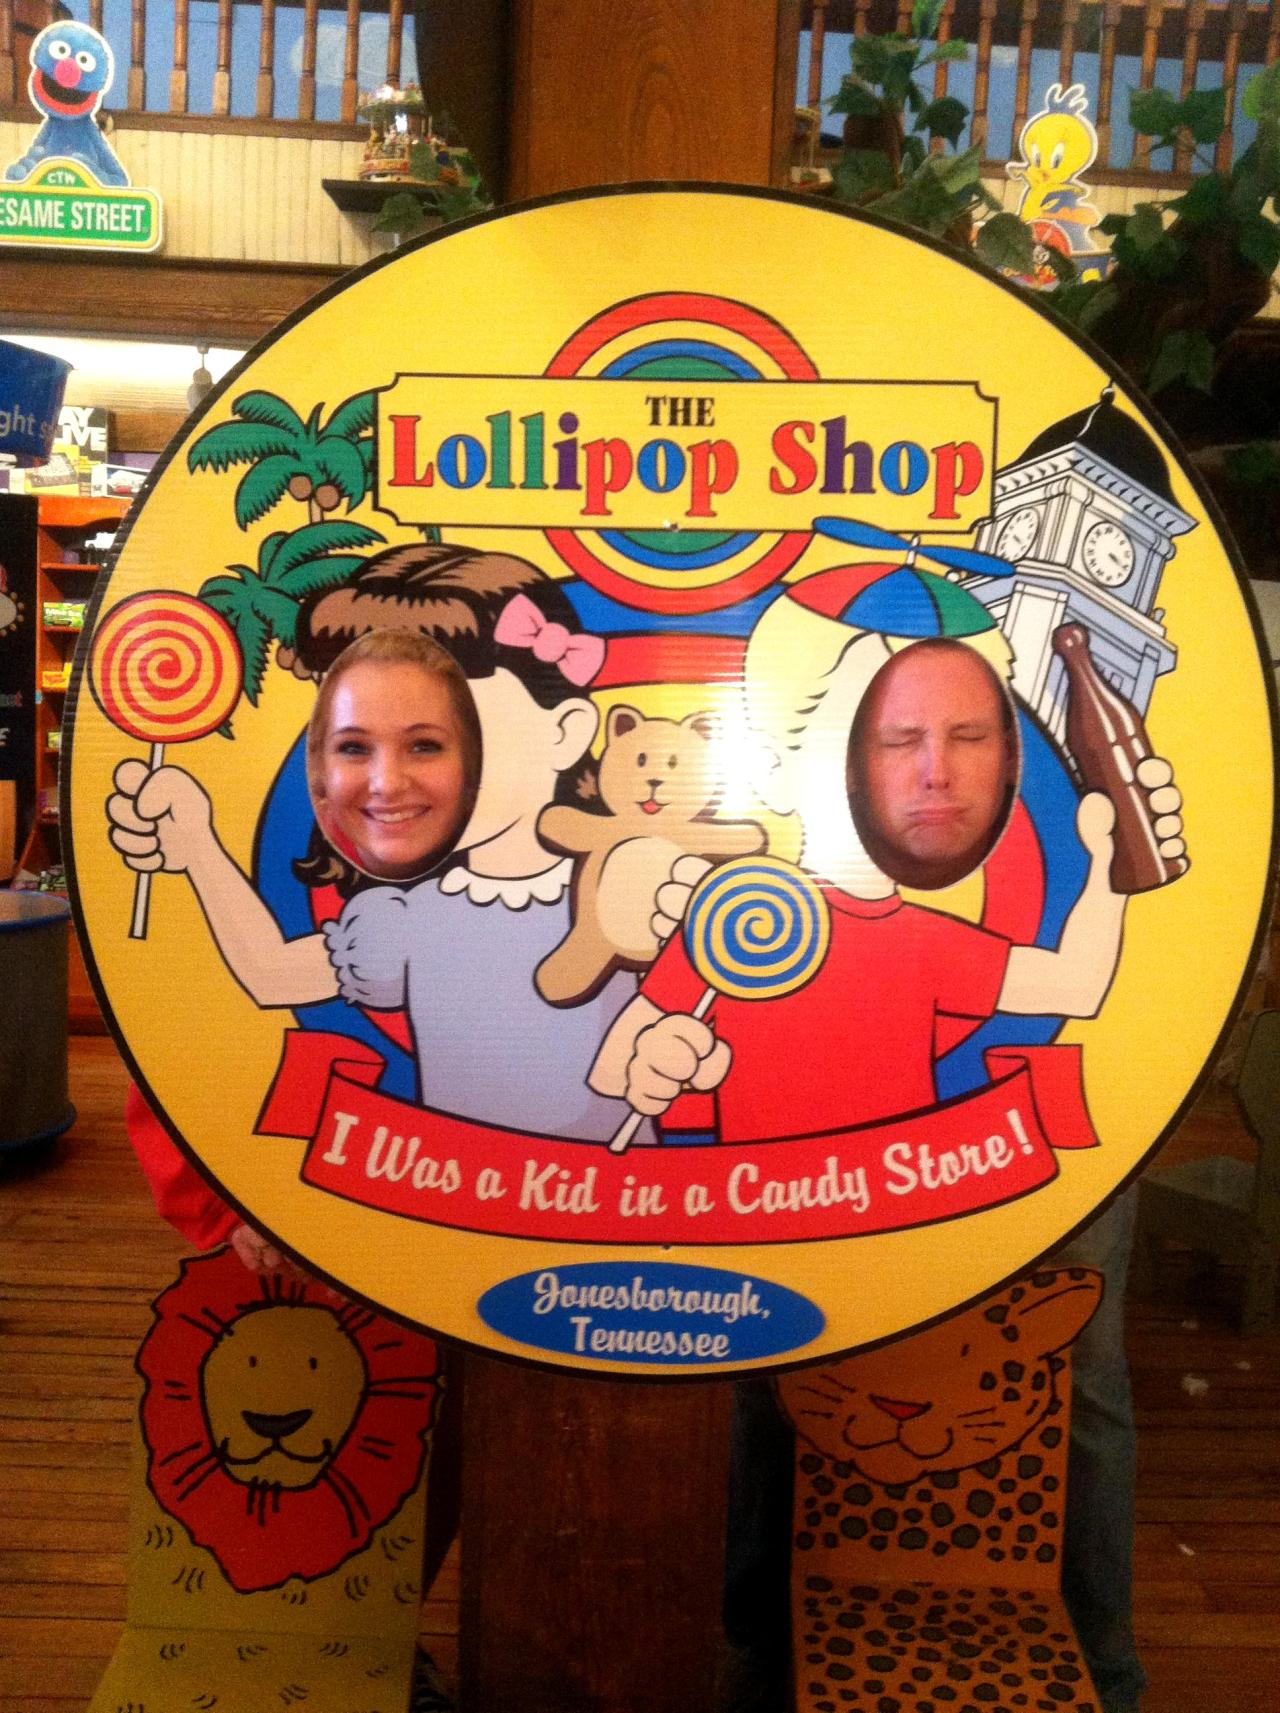 After having lunch at The General Store, the VIP team stopped at The Lollipop Shop for dessert. It was such a super cute store with lots of candy options.  Note: Leave it to my deddy to act ridiculous in every picture *wink*...but I must admit this was too funny! haha